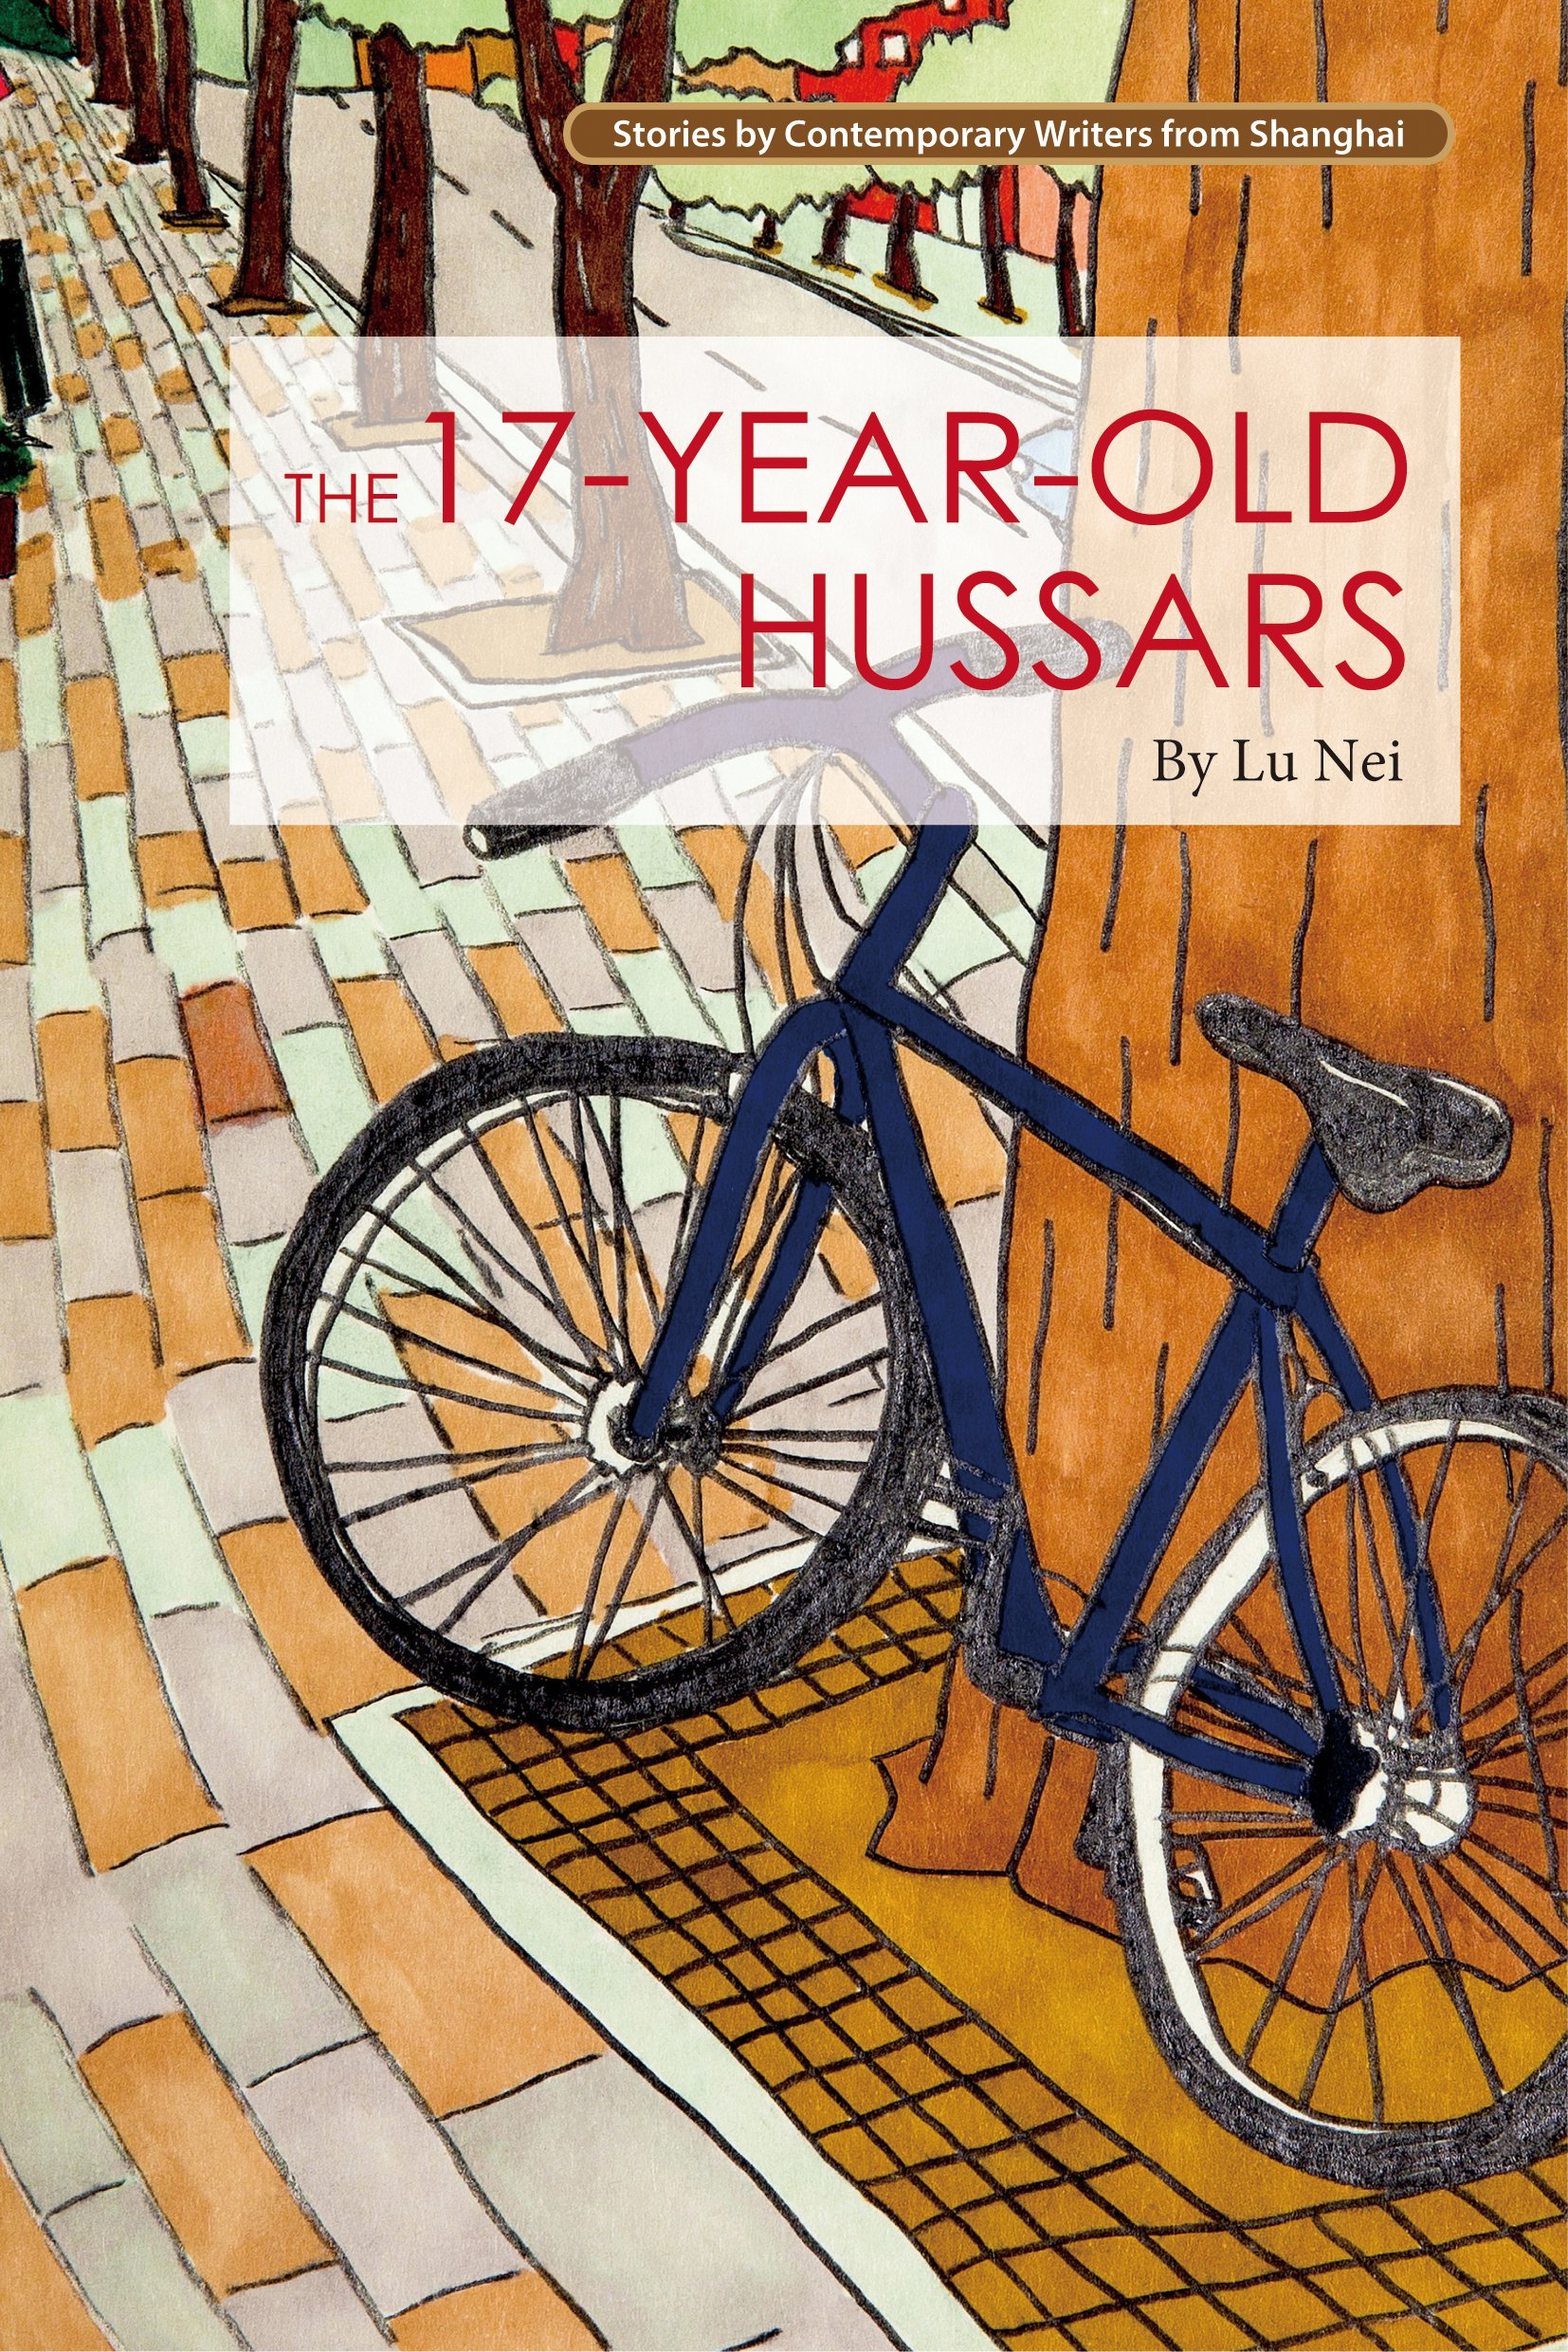 Download The 17-Year-Old Hussars (Contemporary Writers From Shanghai) PDF